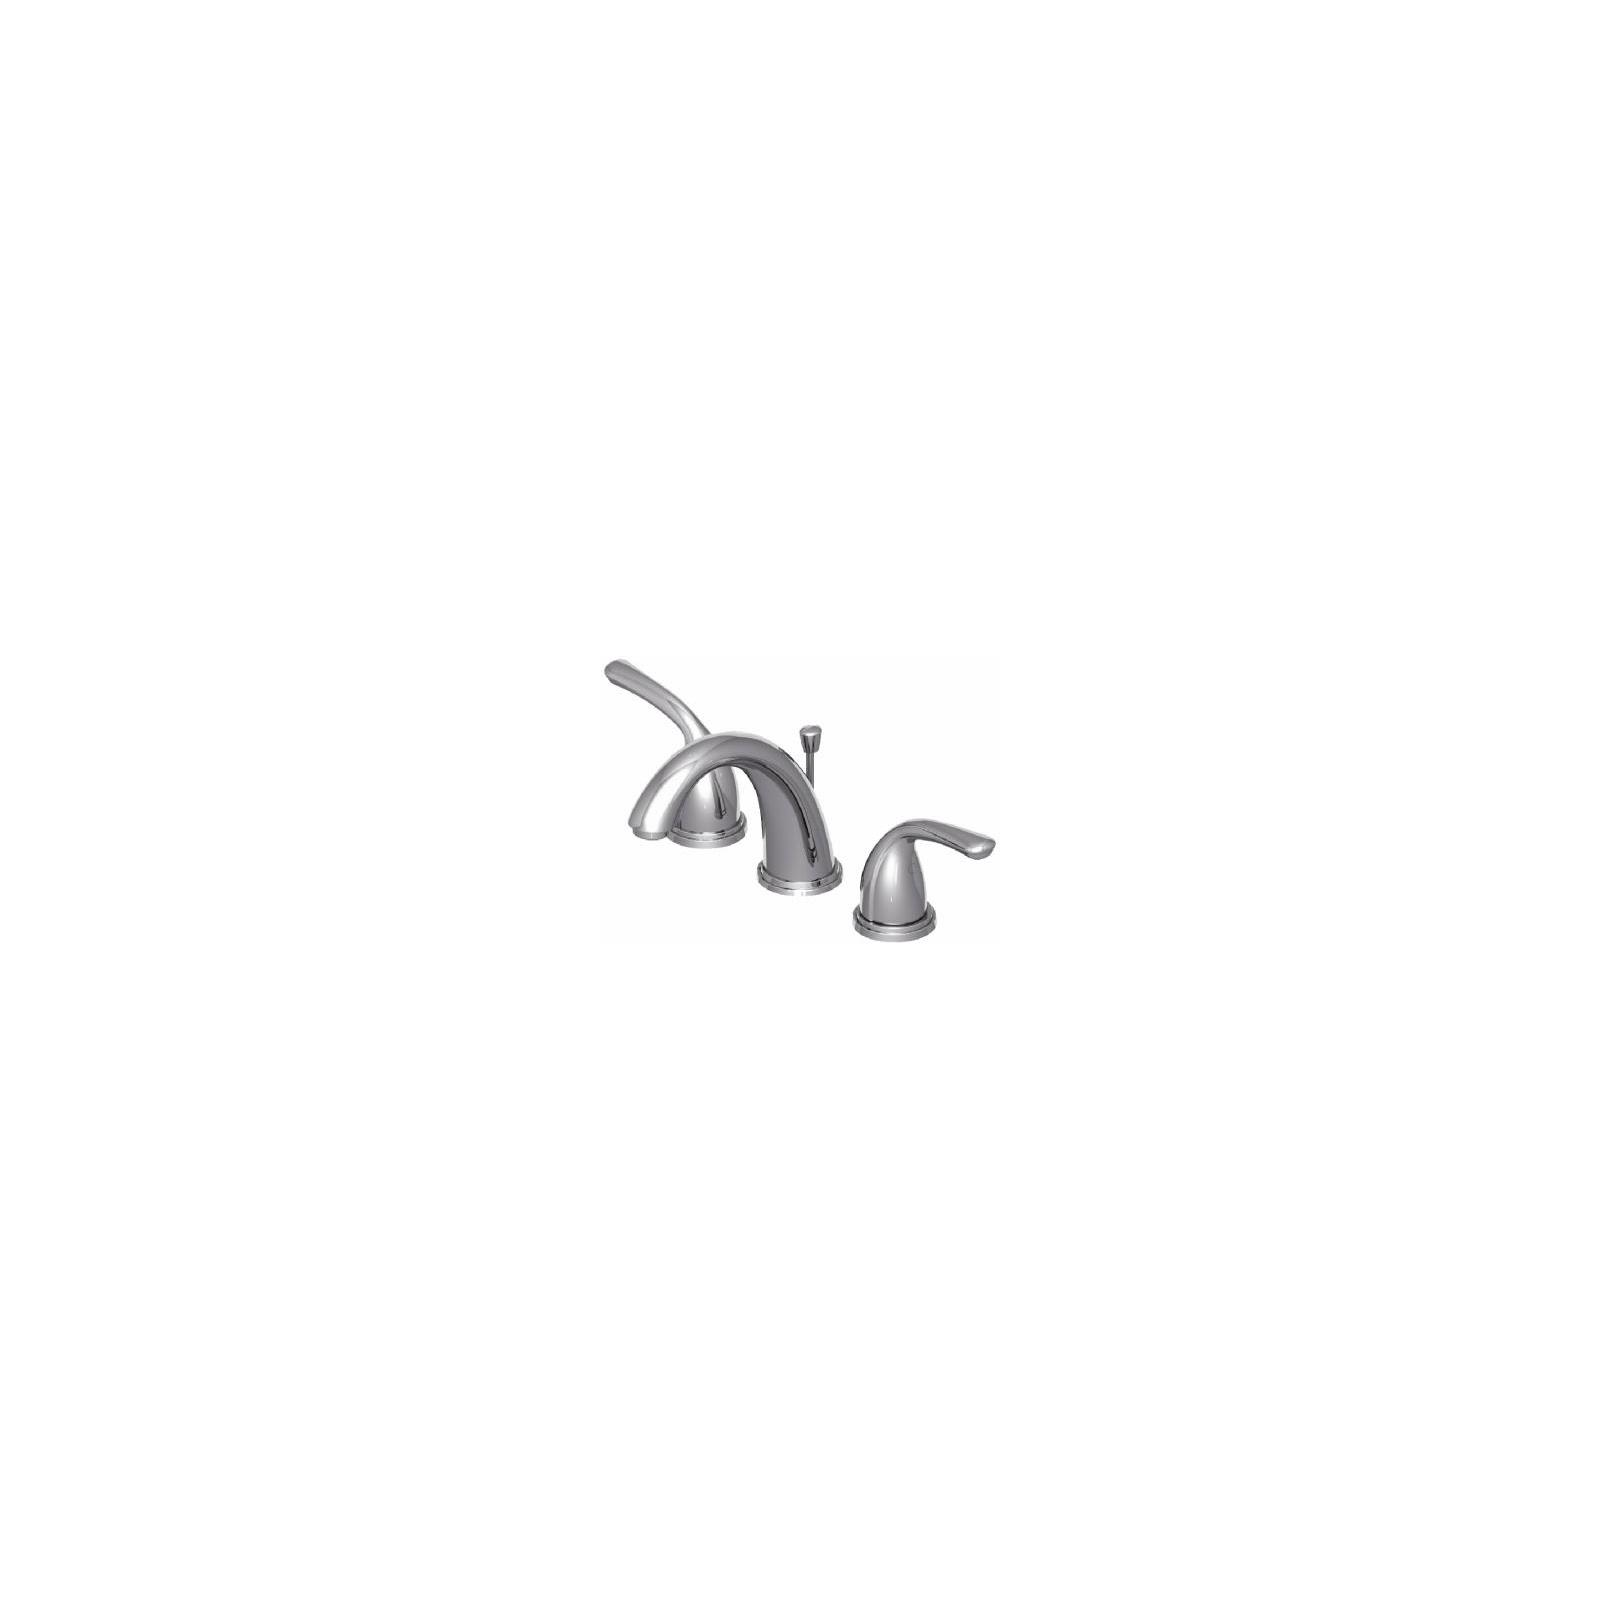 Homewerks Worldwide 116778CA BP Nickel 2Hand Lav Faucet - Quantity 1